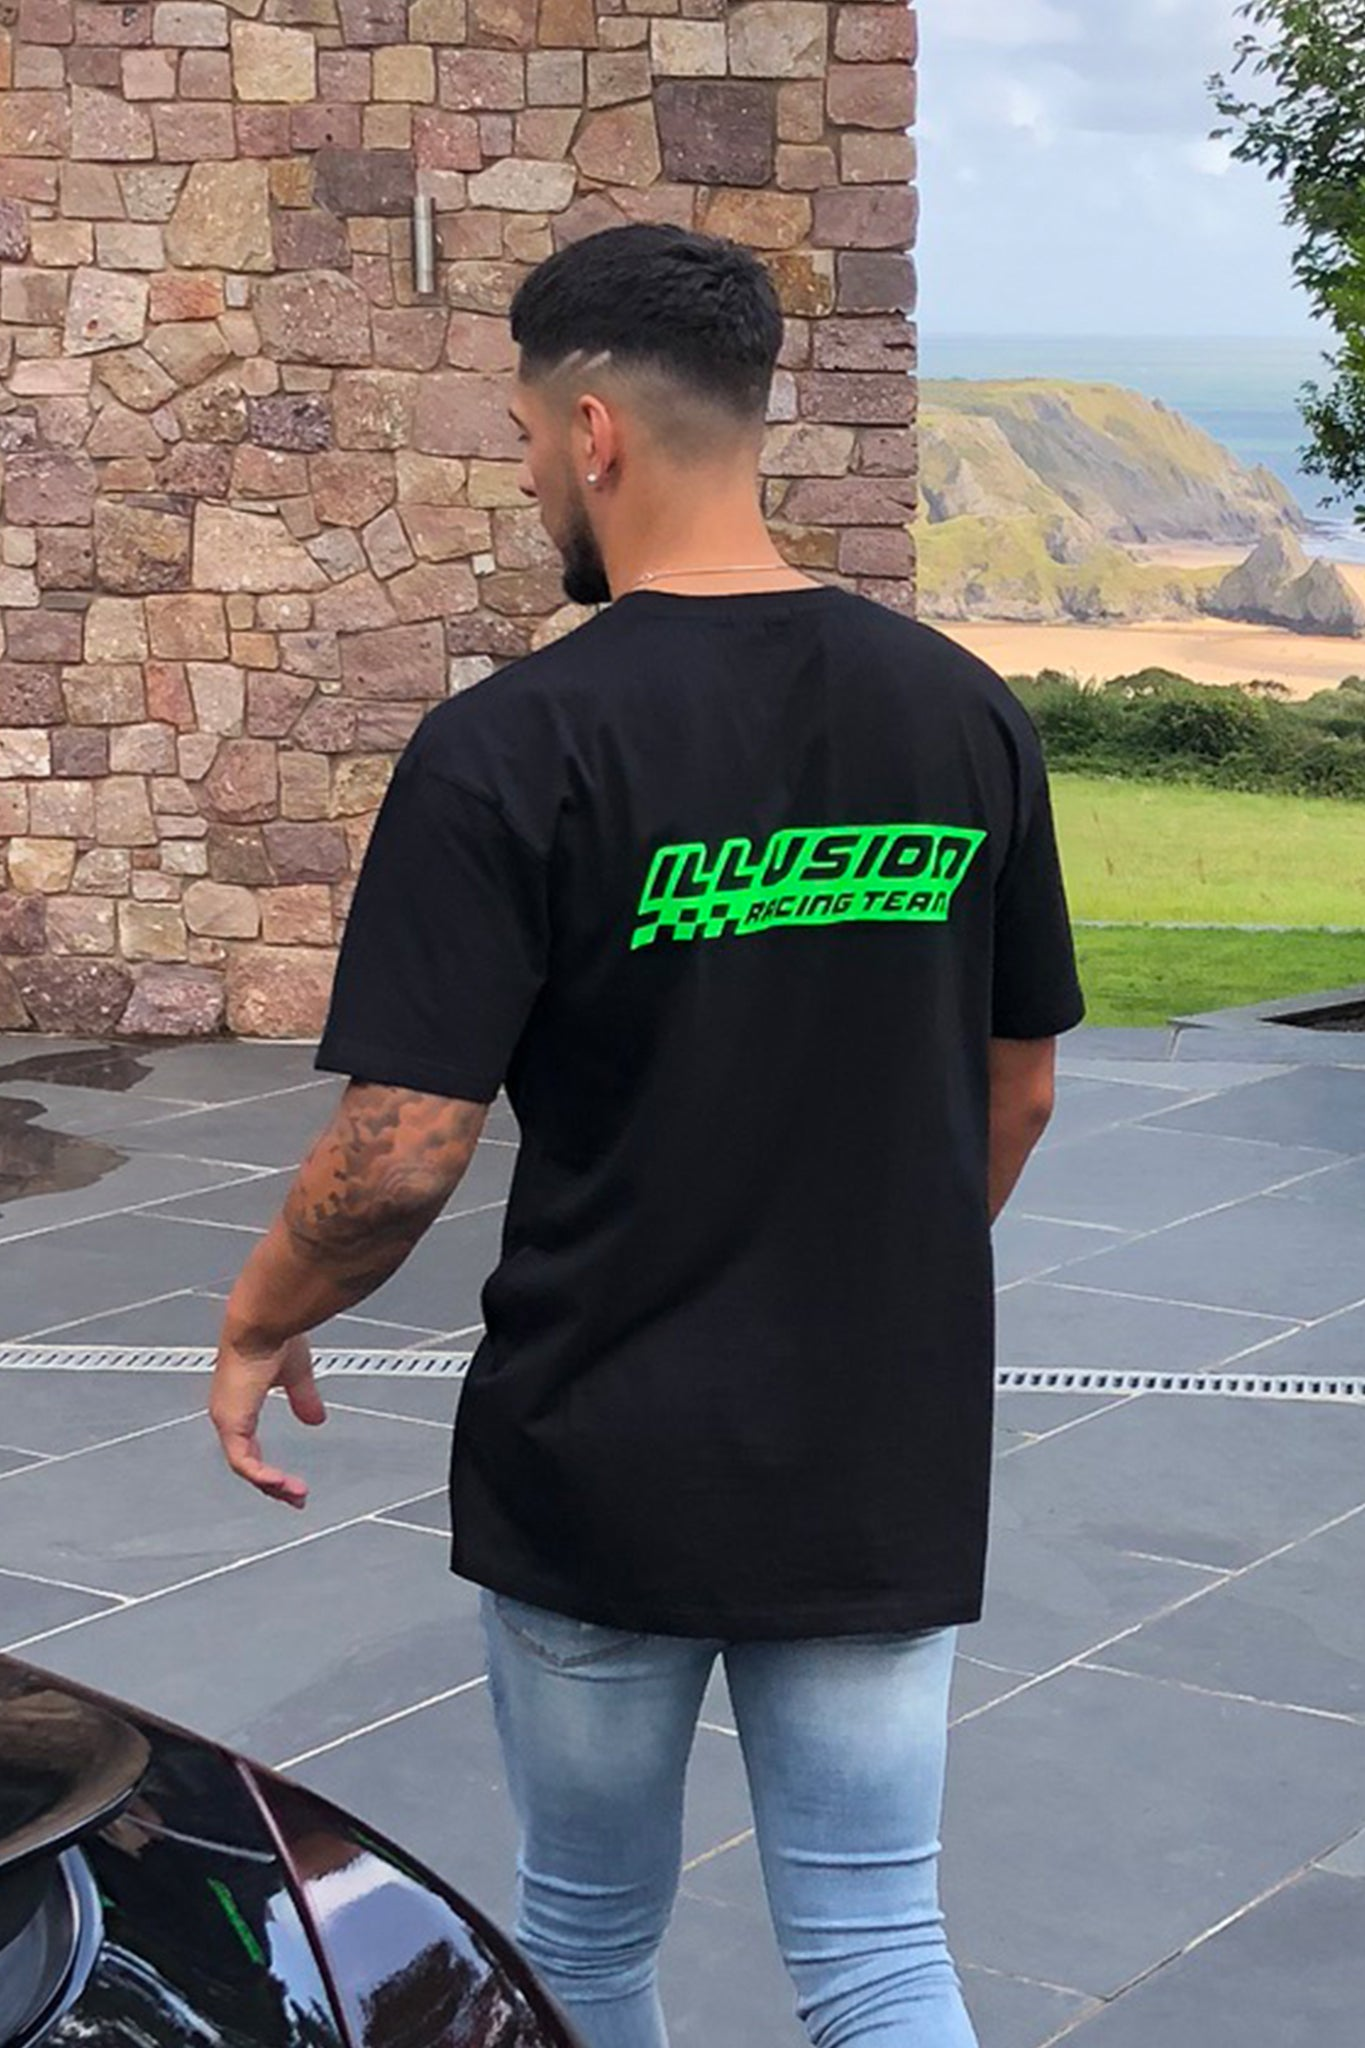 BLACK OVERSIZED ILLUSION 'RACING TEAM' TEE - Illusion Attire